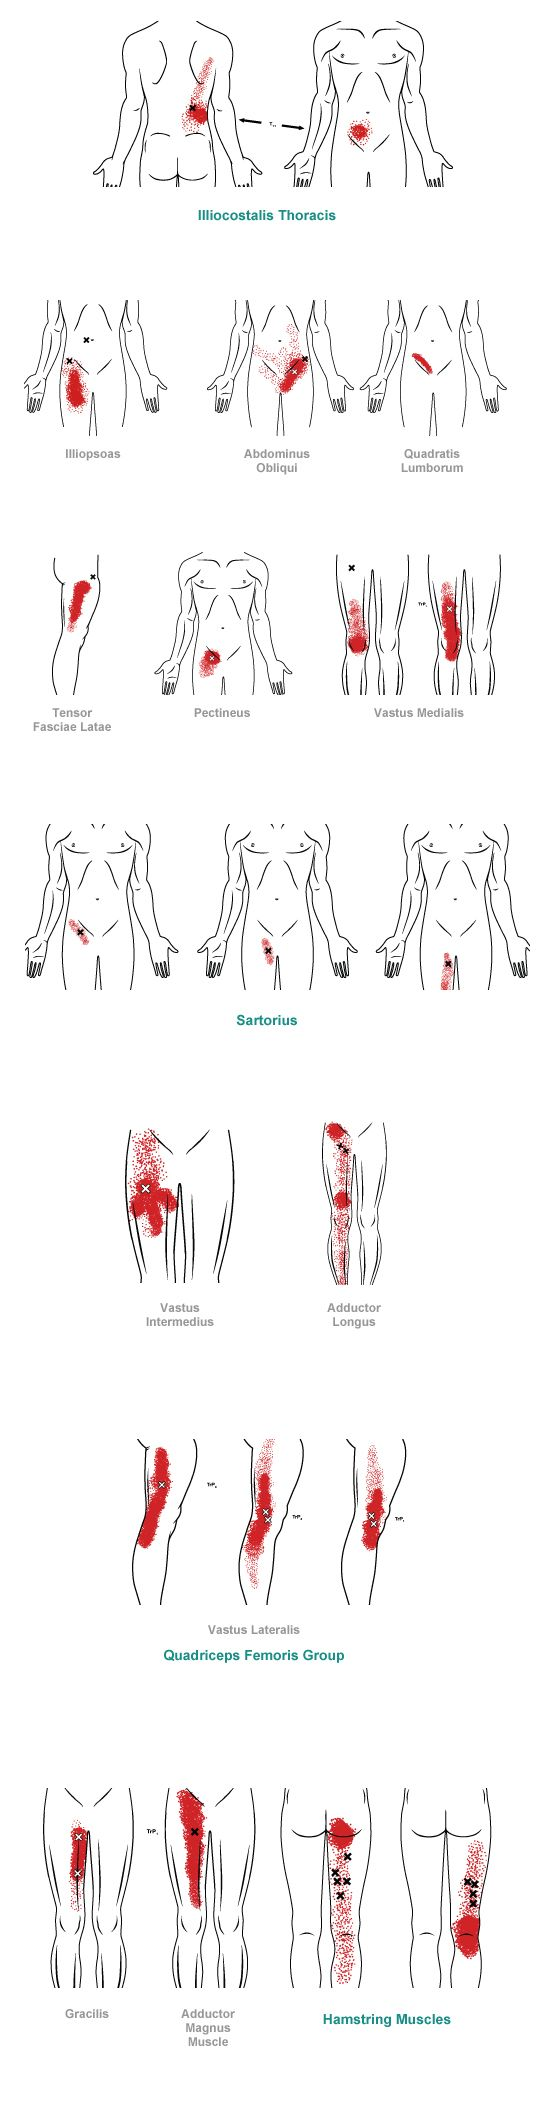 Colour therapy for sciatica - 86 Best Images About Sciatica Groin Relief And Pain Patterns On Pinterest Massage Muscle And Stretching